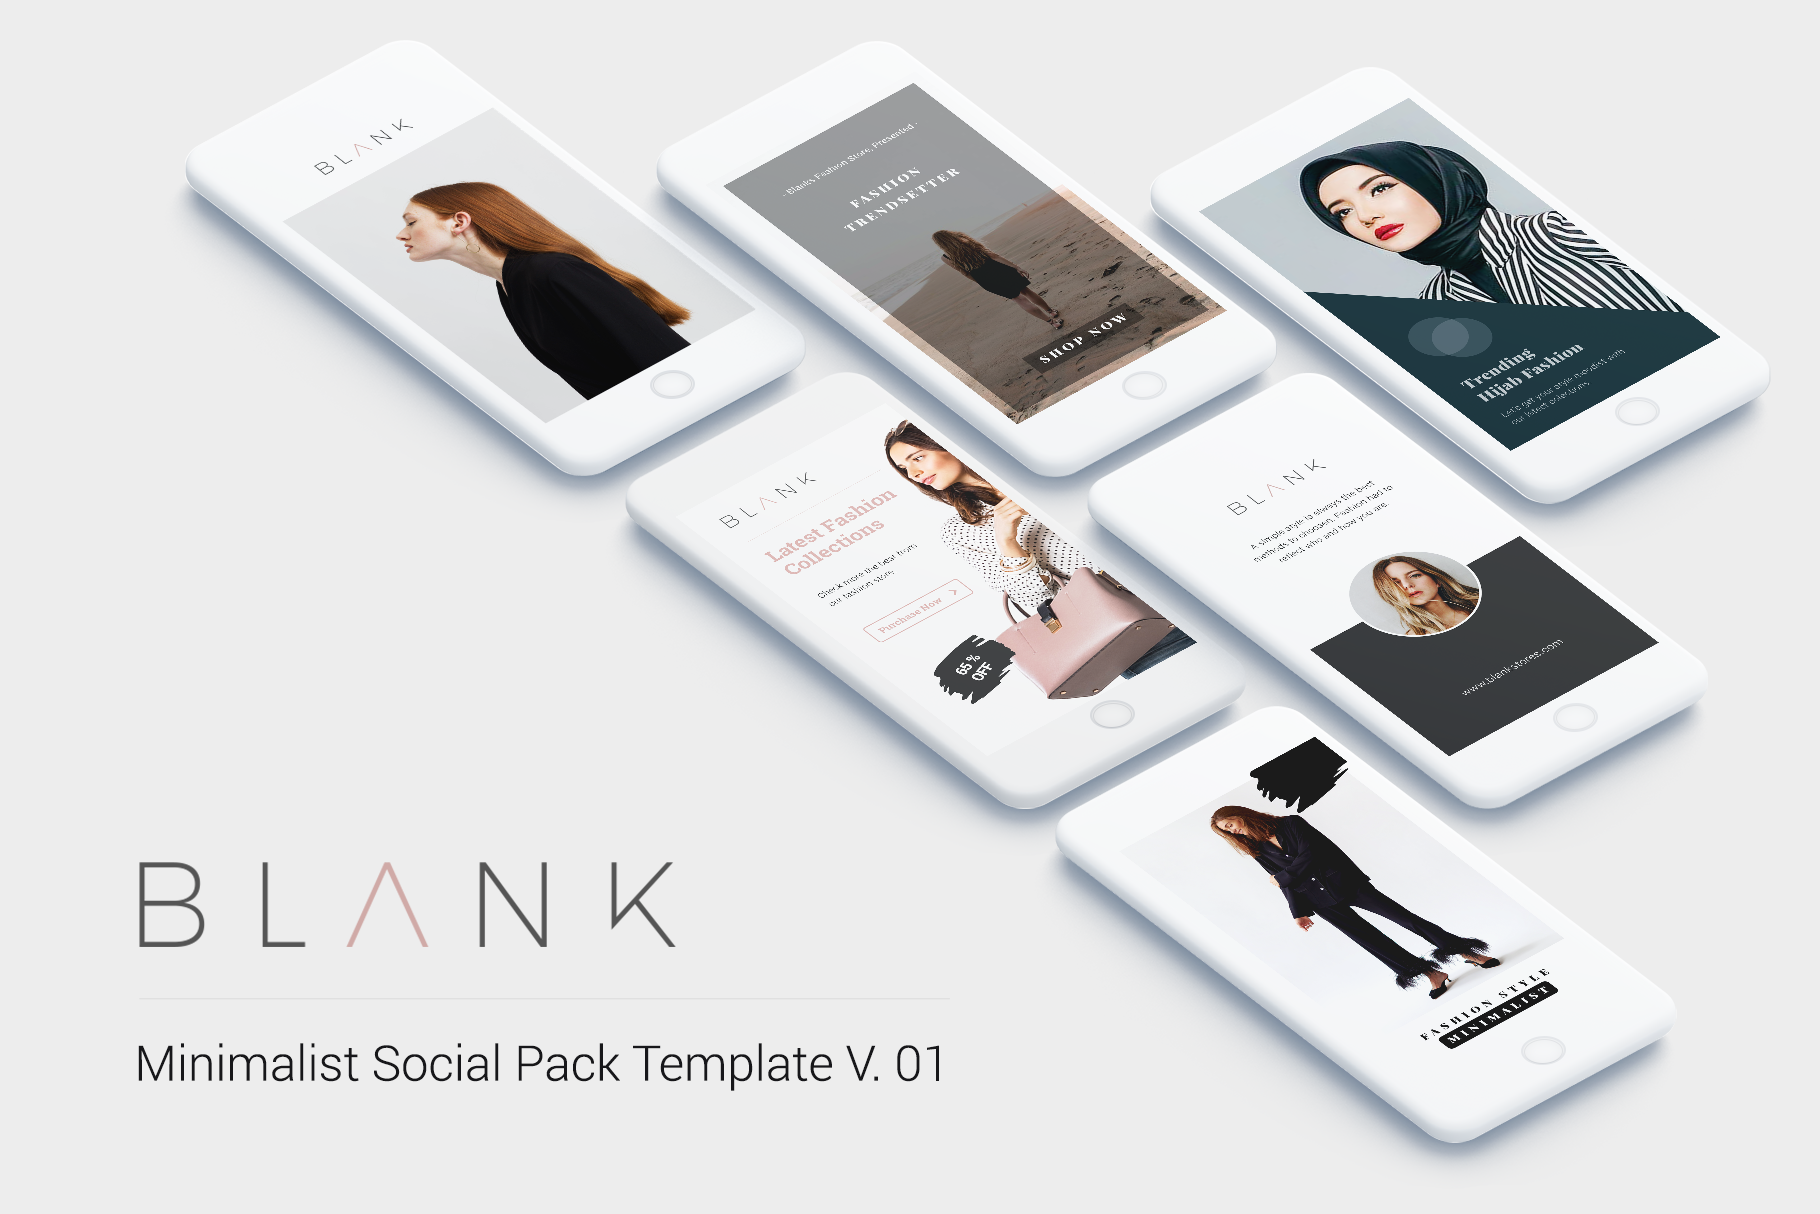 Minimal Social Packs v. 01 example image 2